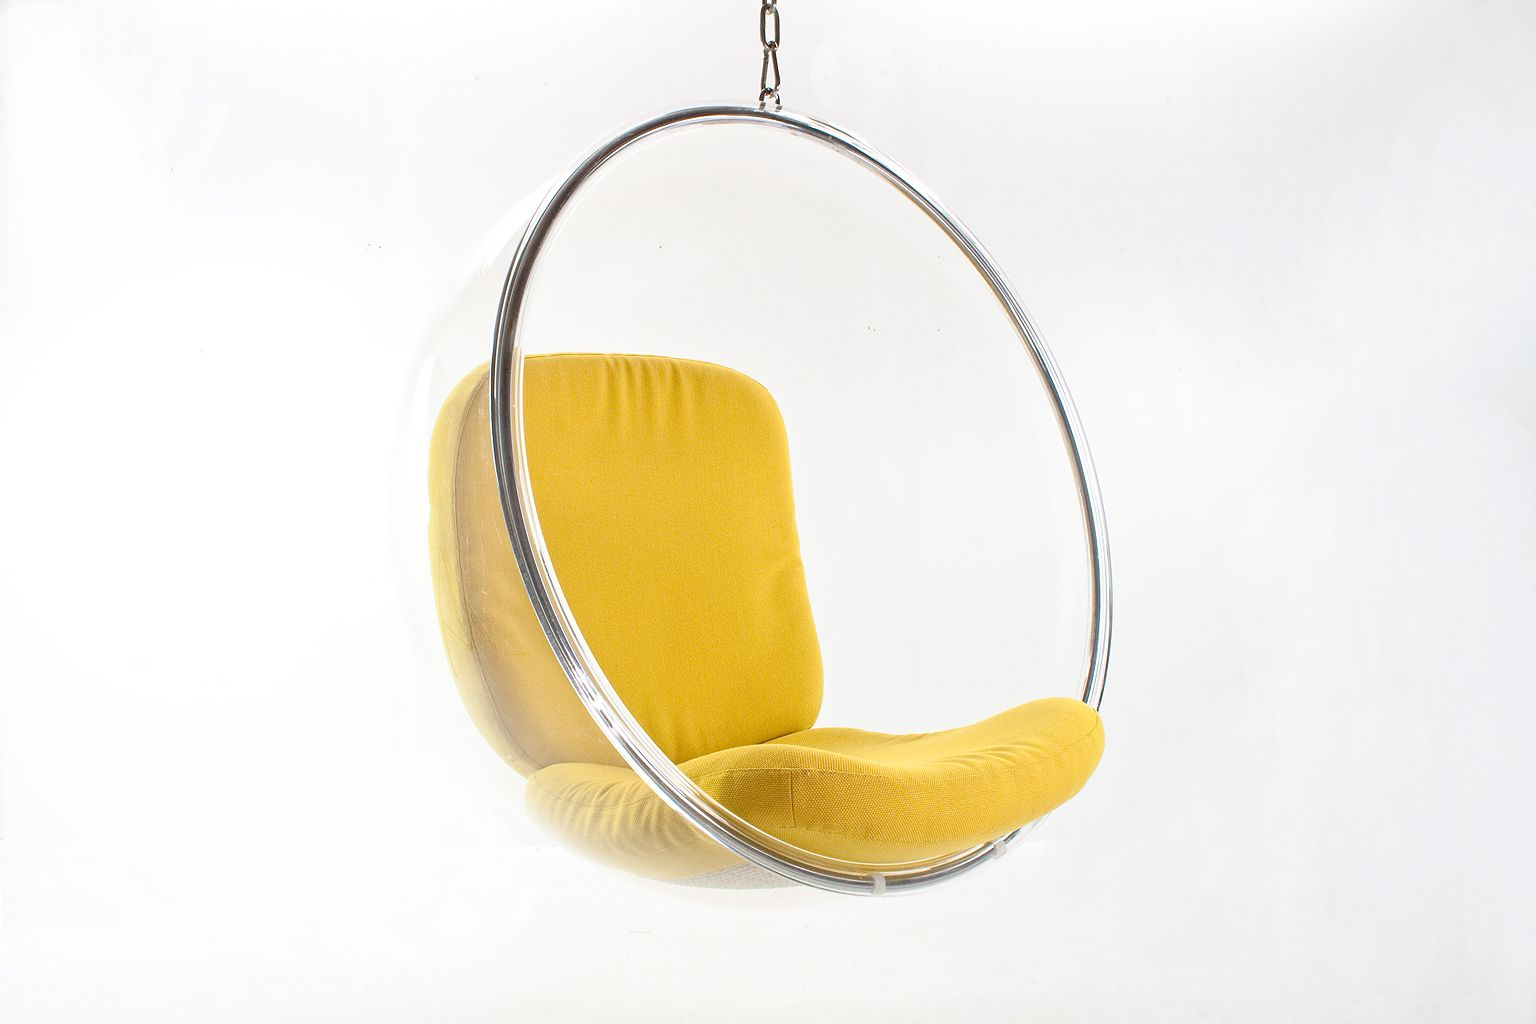 Original Acrylic Bubble Hanging Chair Of Eero Aarnio. The Bubble Chair Is  Designed By Eero